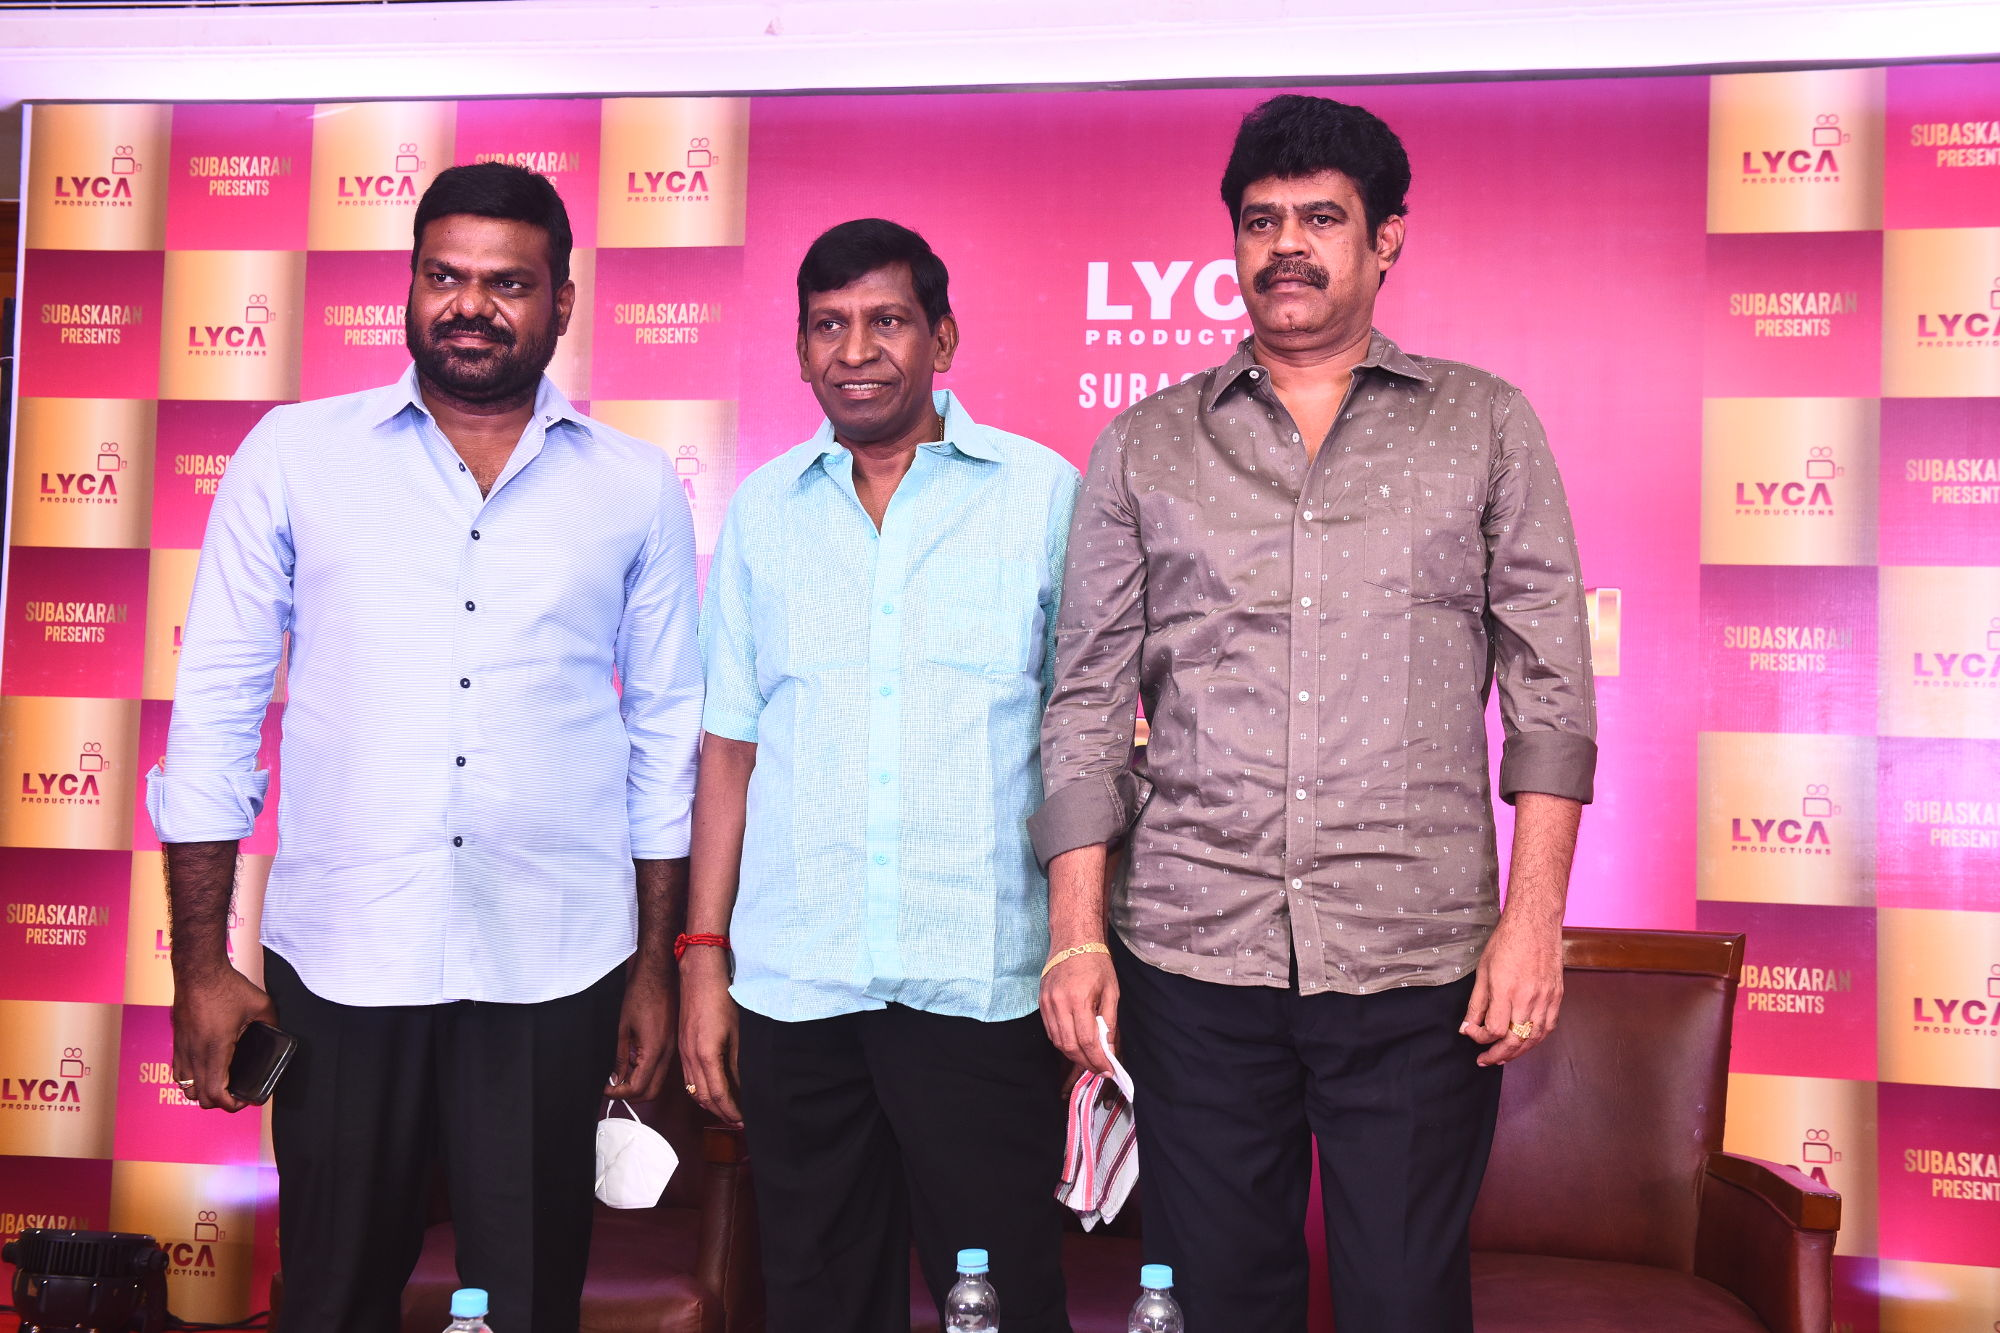 Vadivelu ambition is to make people happy for as long as he live